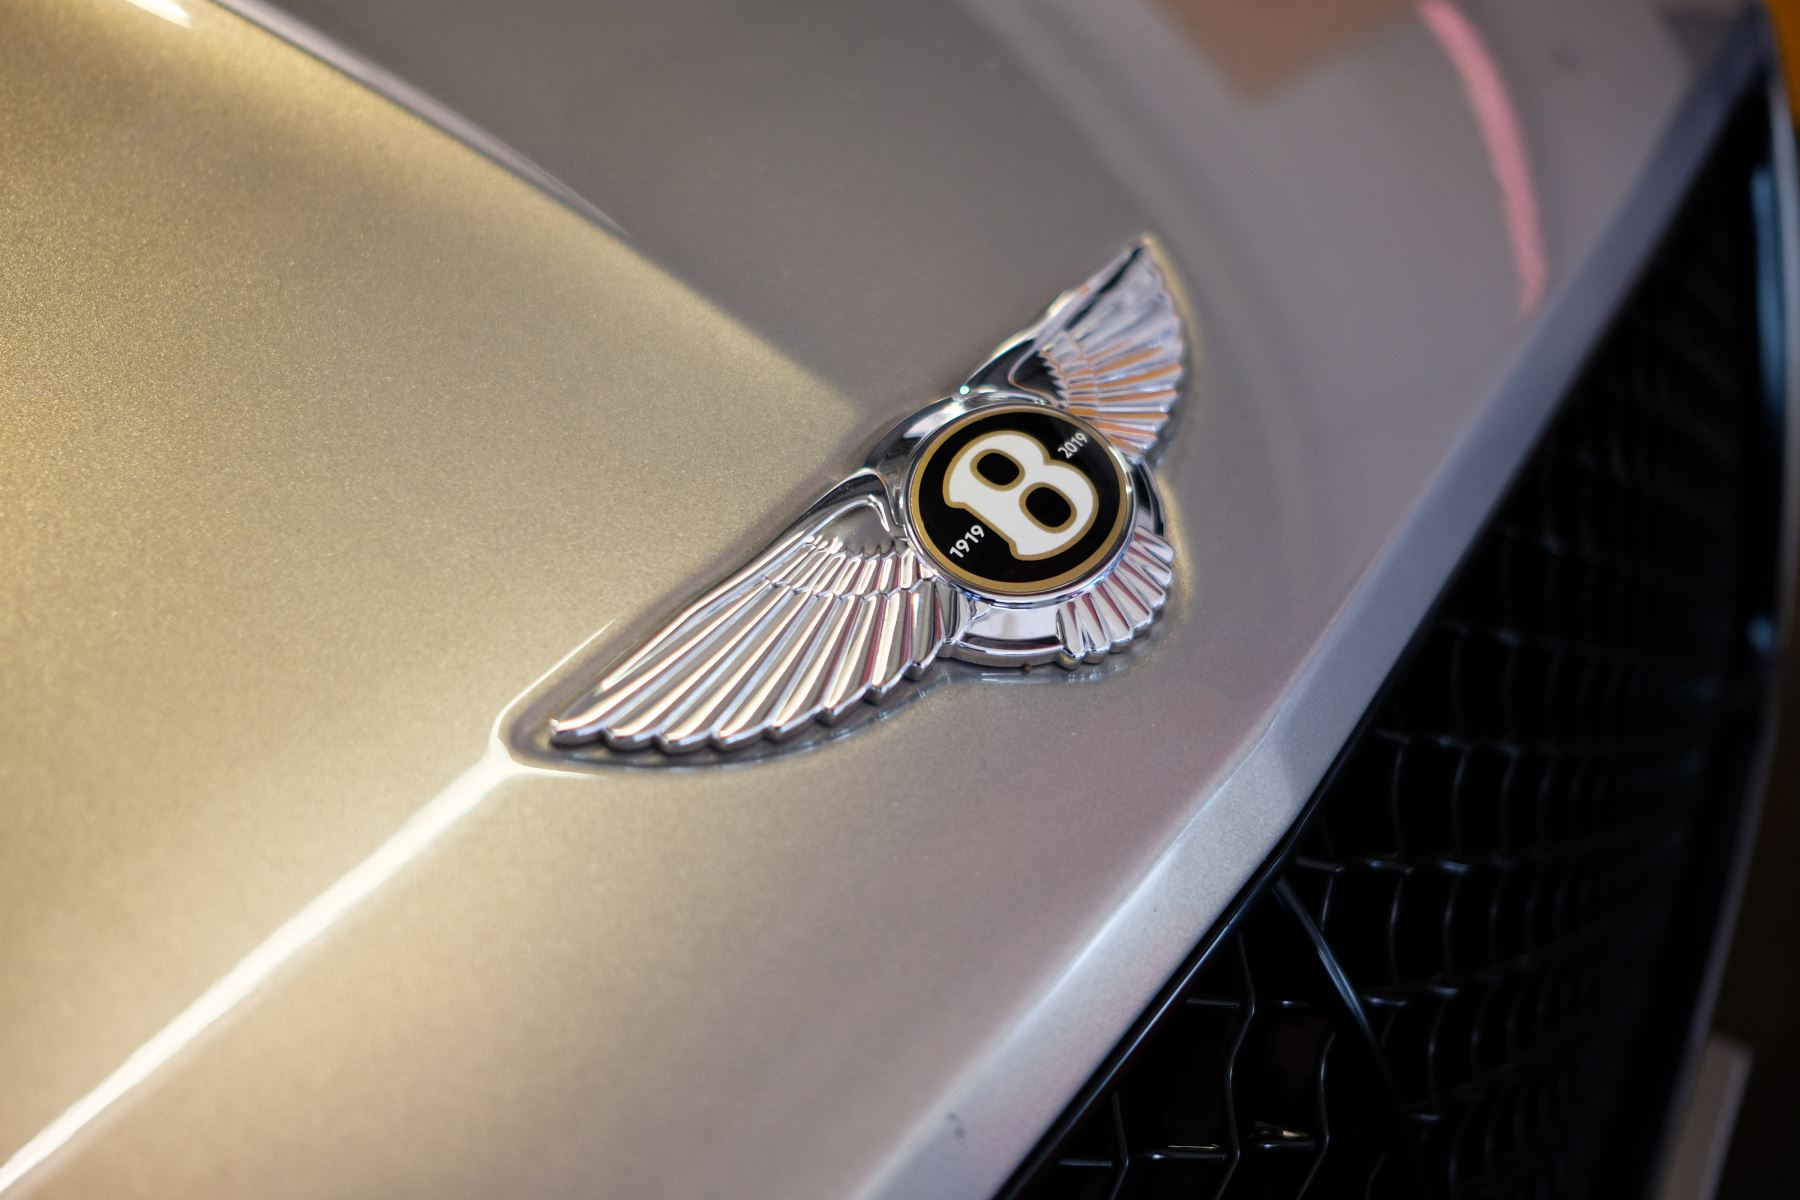 Bentley Continental GT 4.0 V8 - Mulliner Driving Specification with Black Painted Wheels - Touring and Centenary Spec image 65